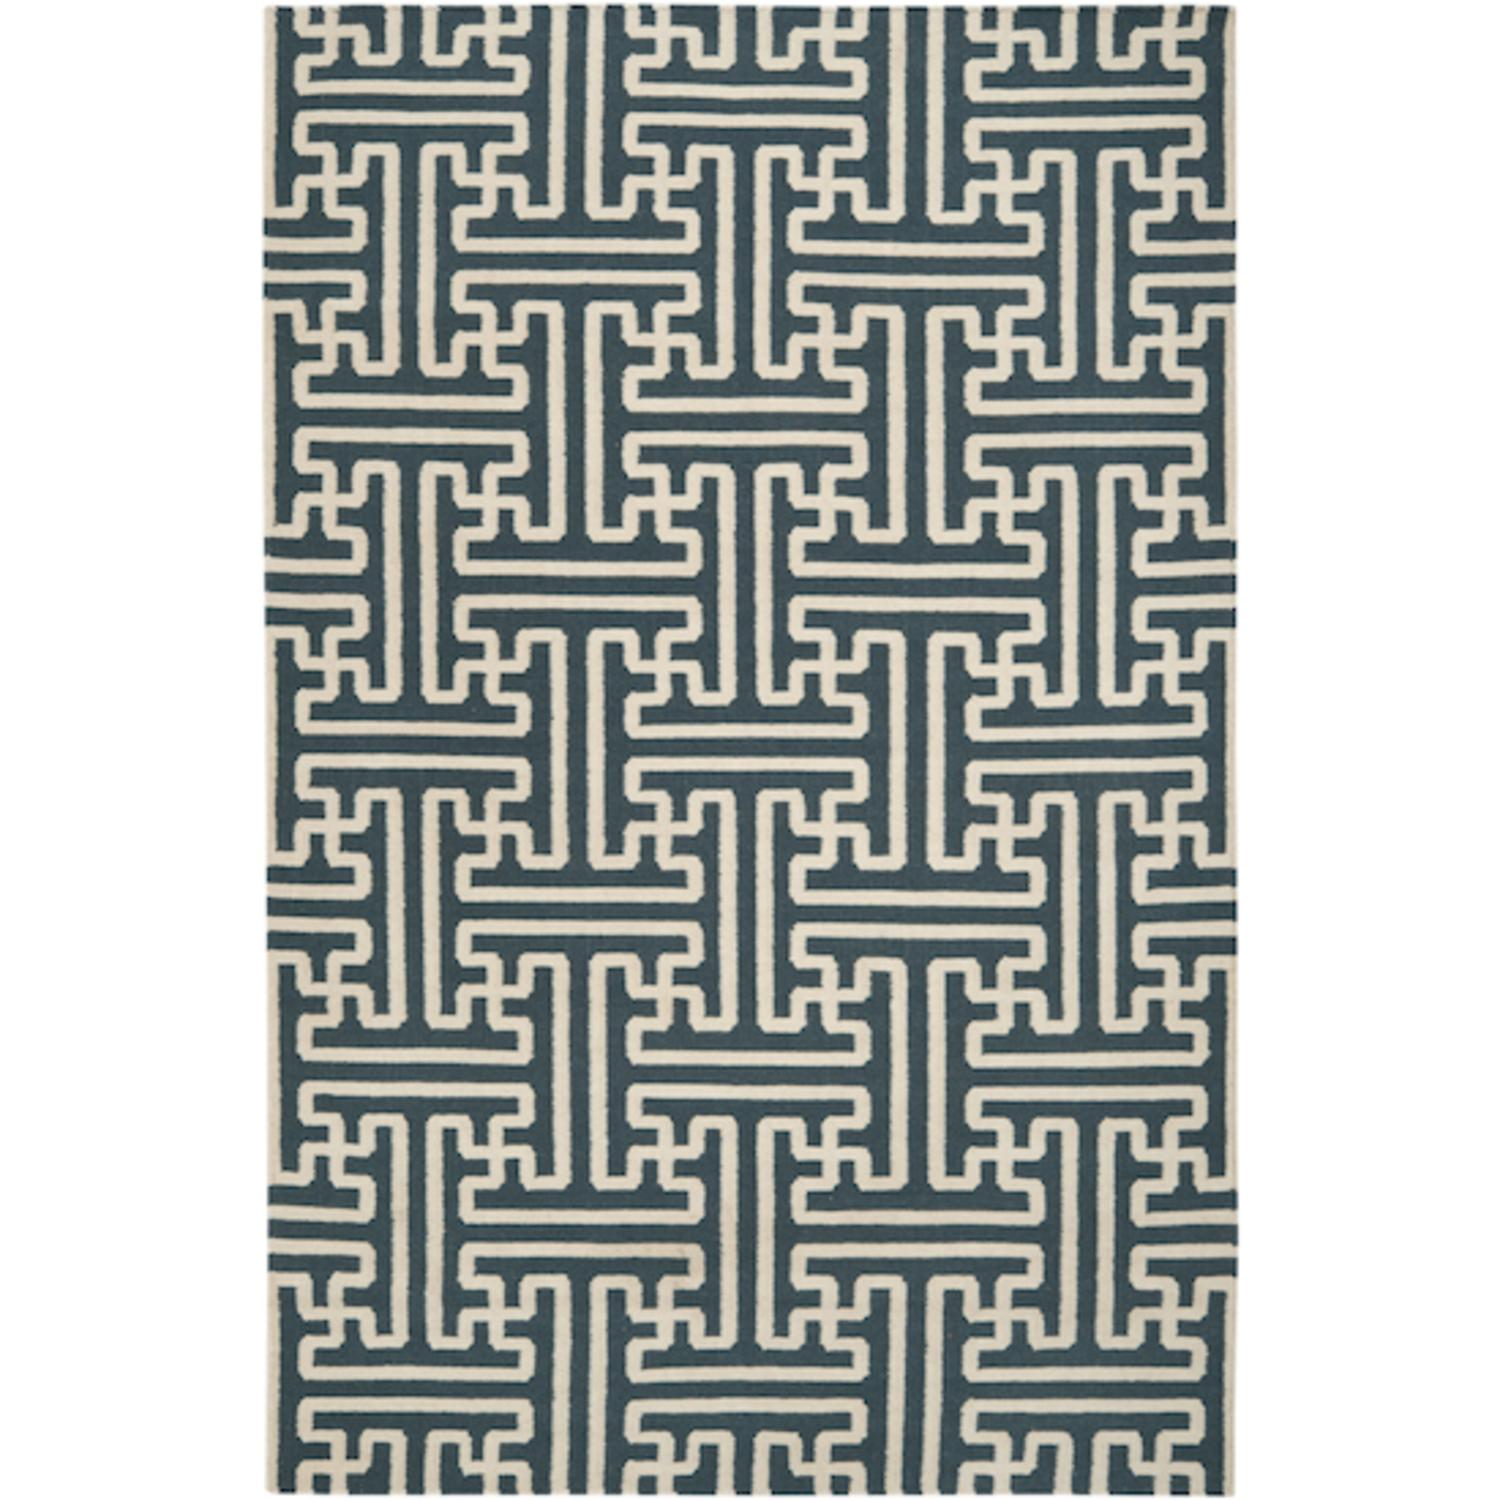 5' x 8' Block Pillars Winter White and Peacock Green Wool Area Throw Rug